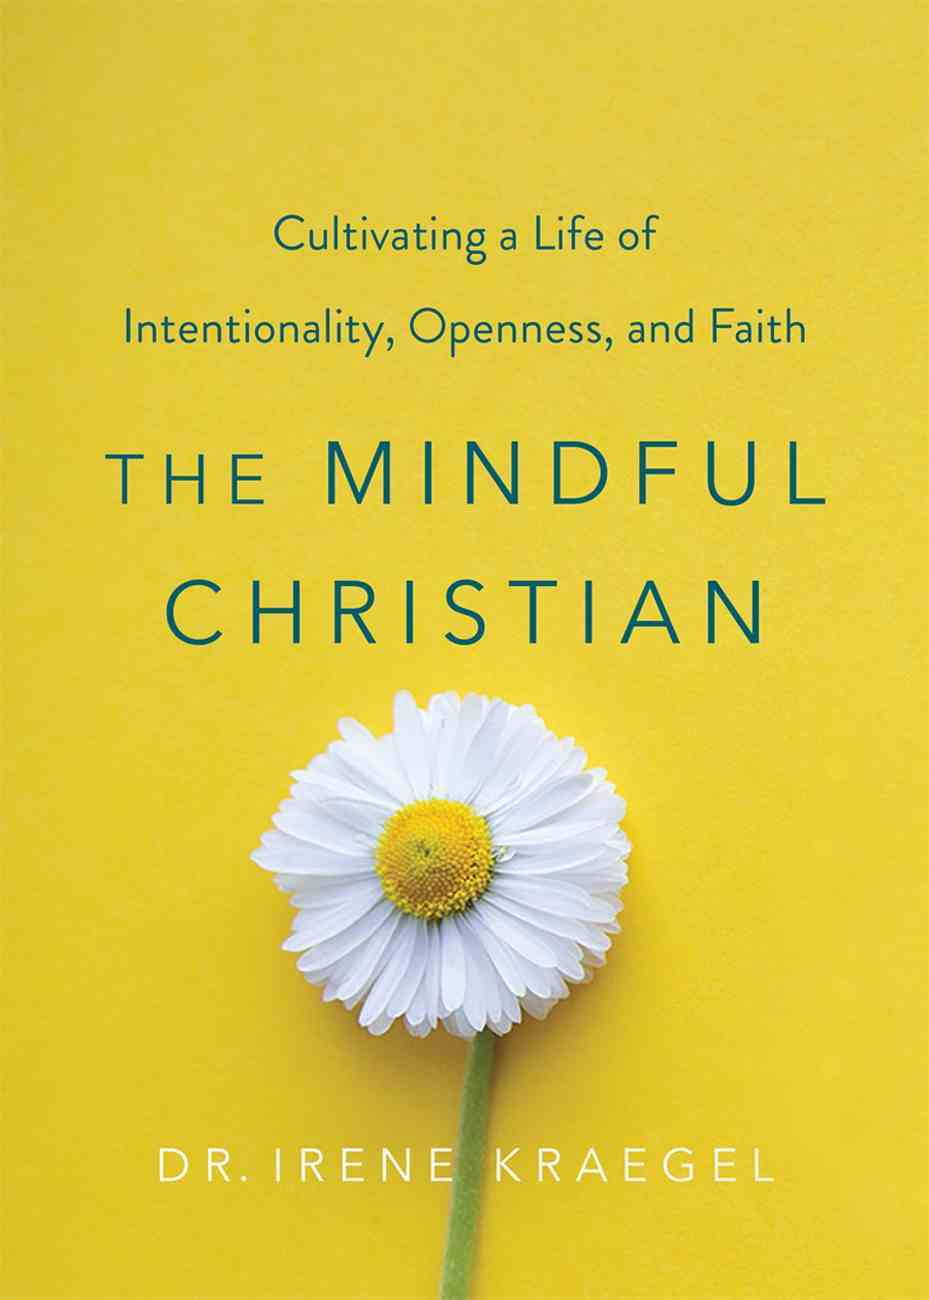 The Mindful Christian: Cultivating a Life of Intentionality, Openness, and Faith Hardback